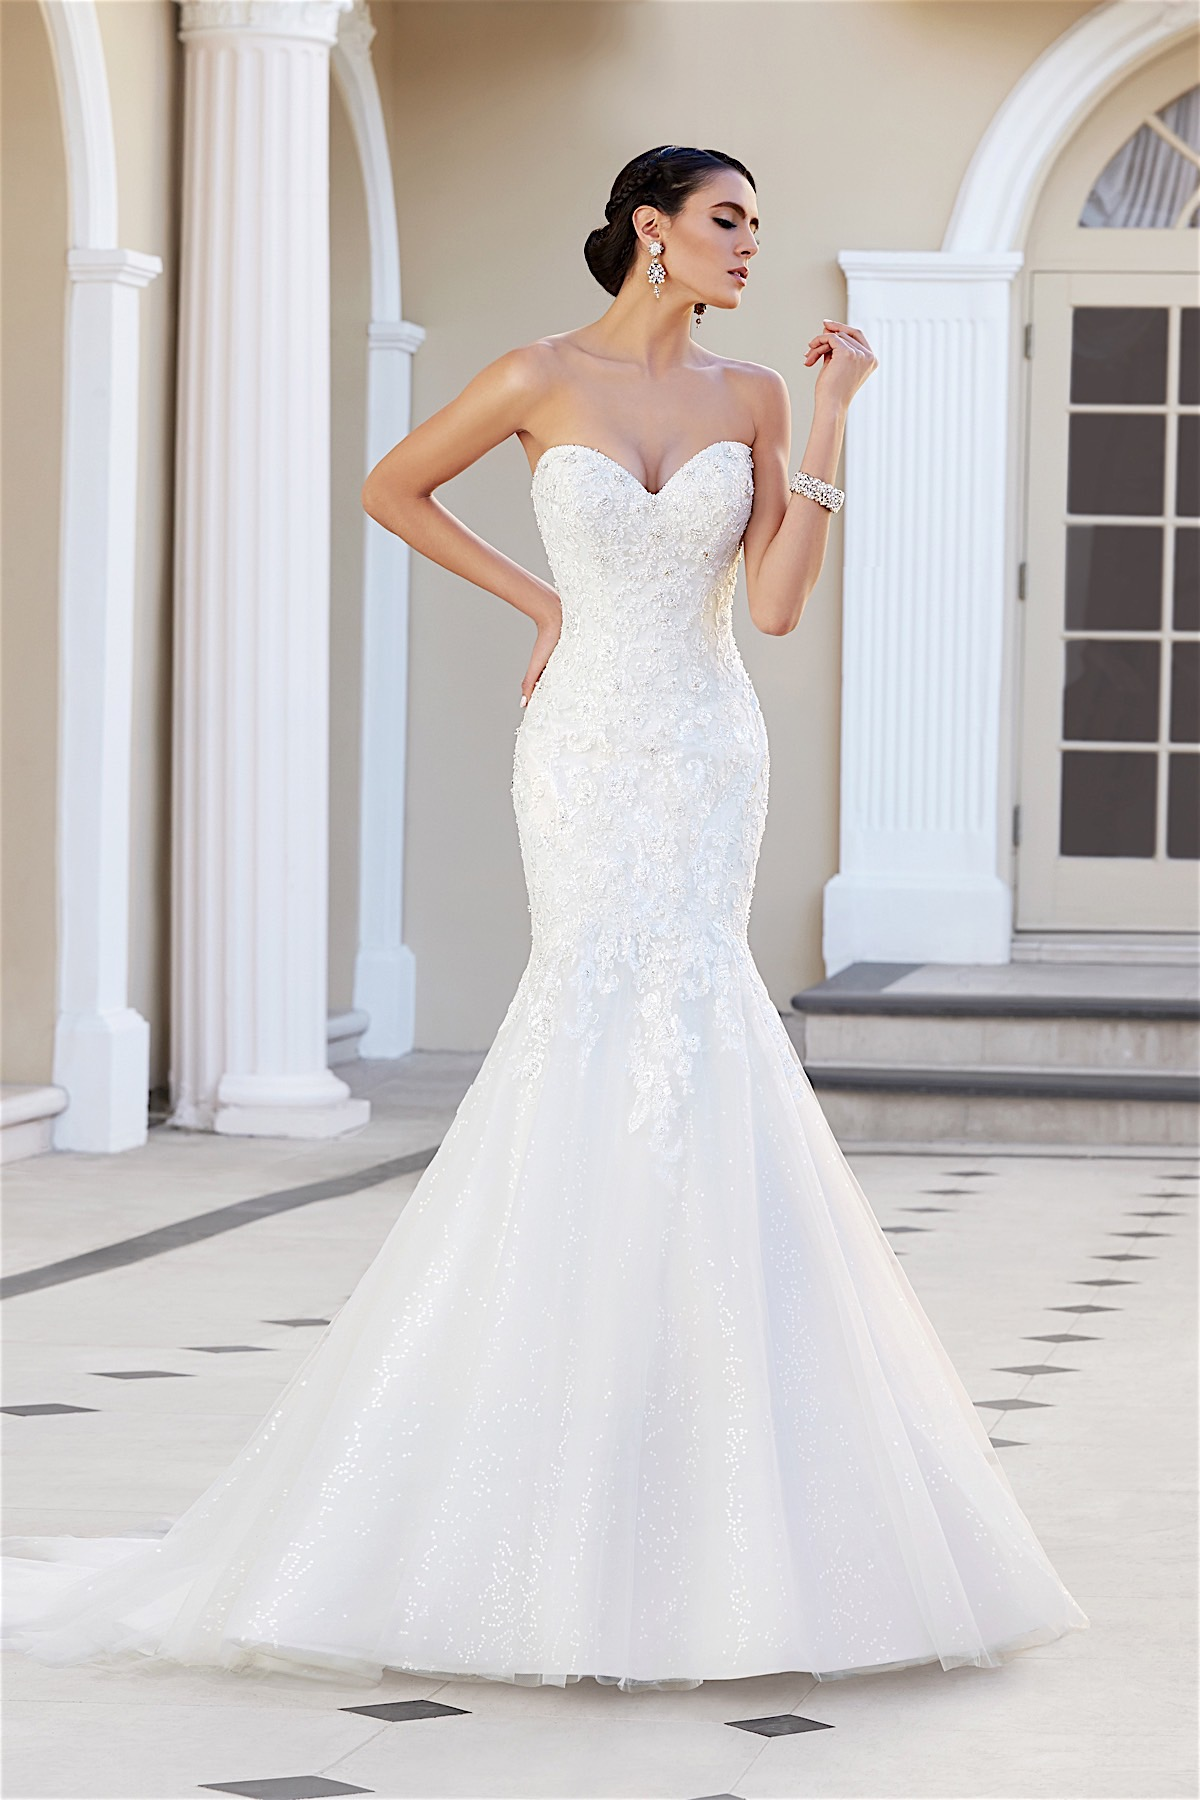 Designer Wedding Dresses Gold Coast